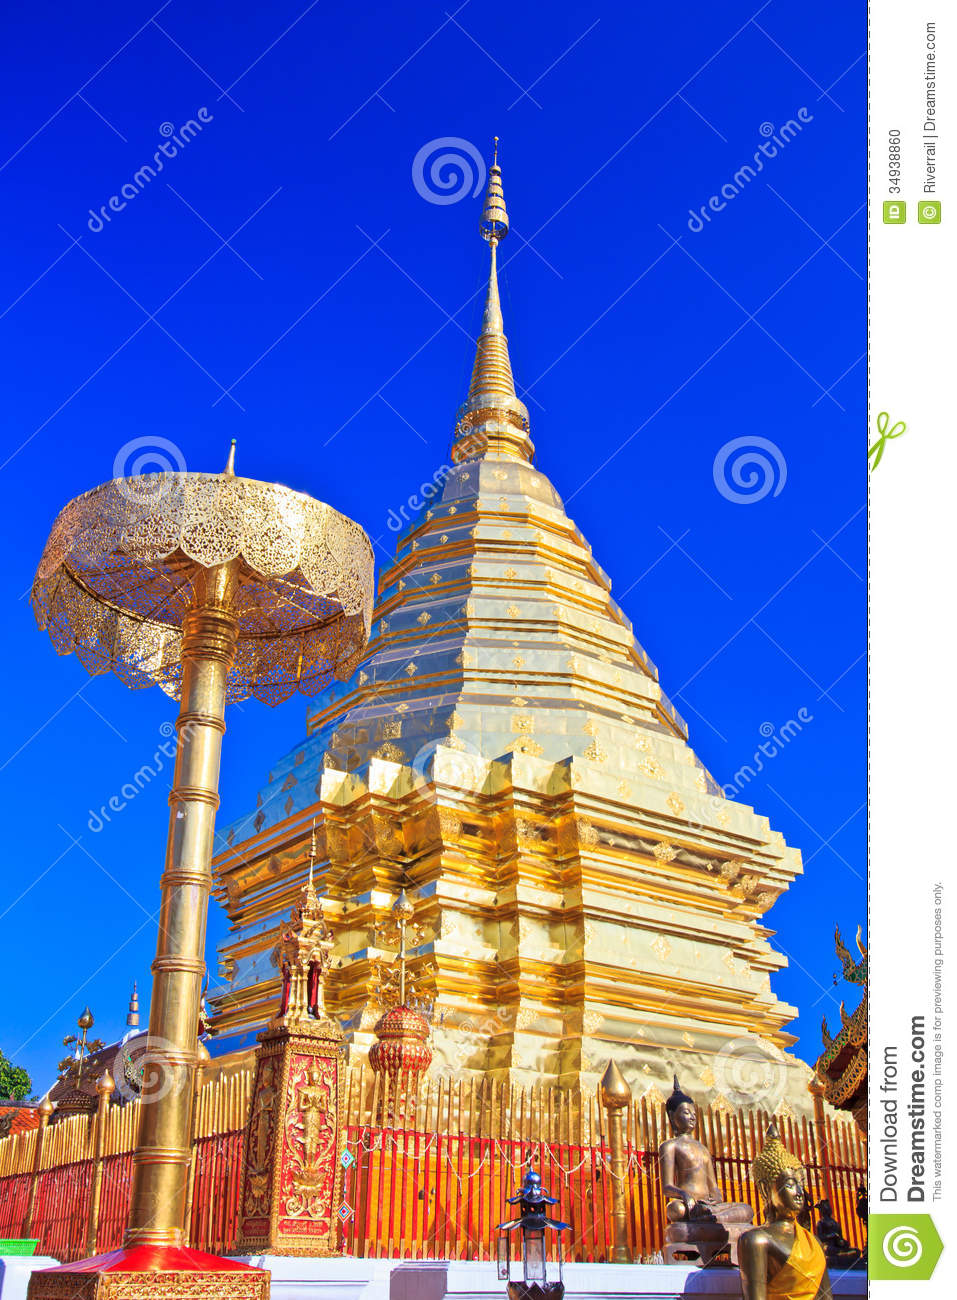 Wat Phra That Doi Suthep Stock Photo - Image: 34938860